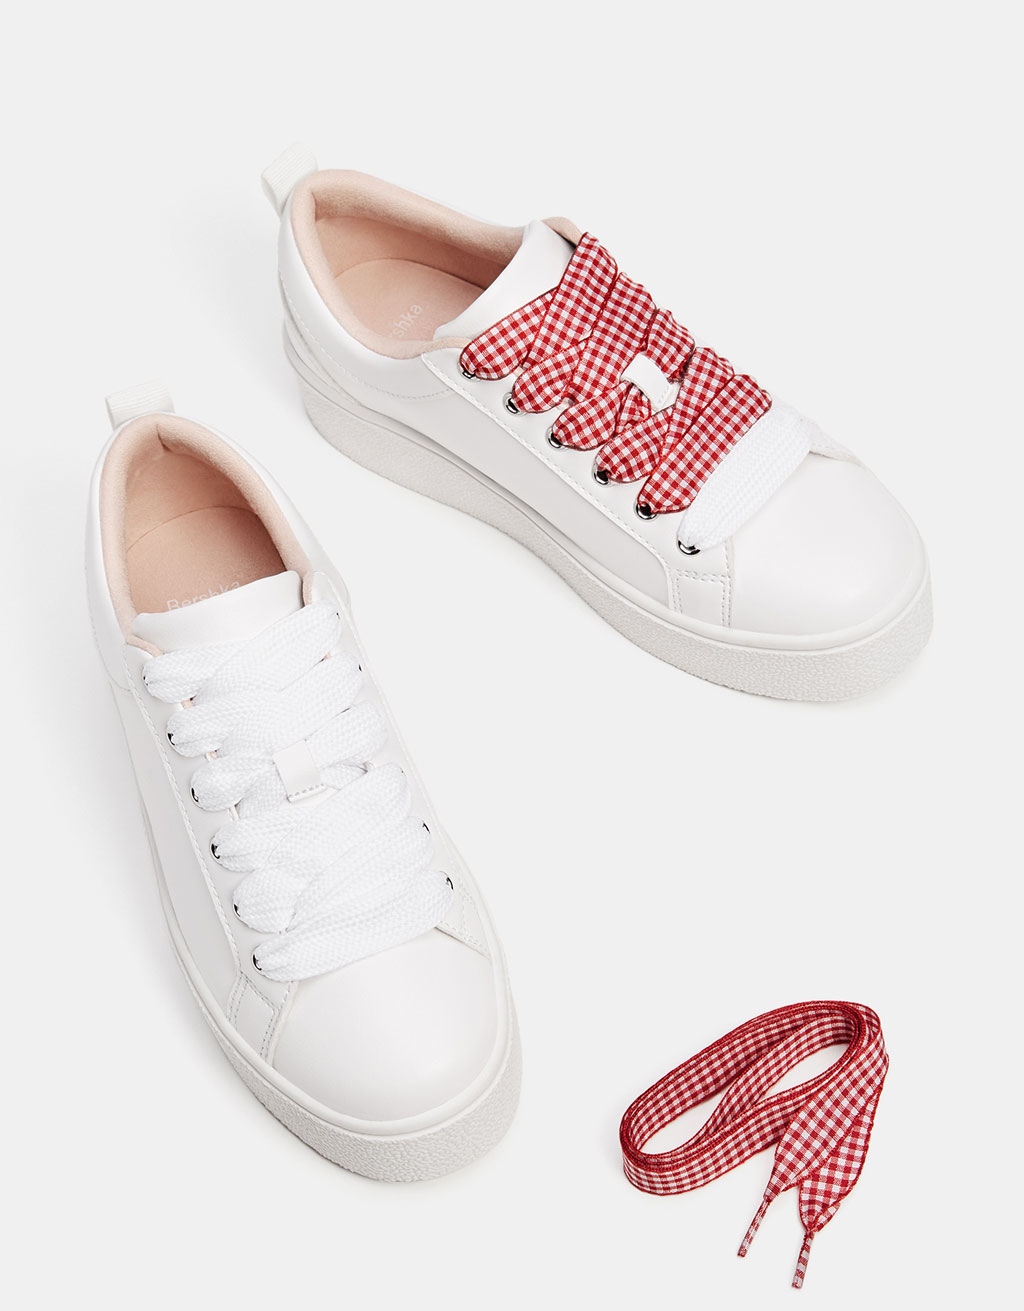 Sneakers with gingham laces